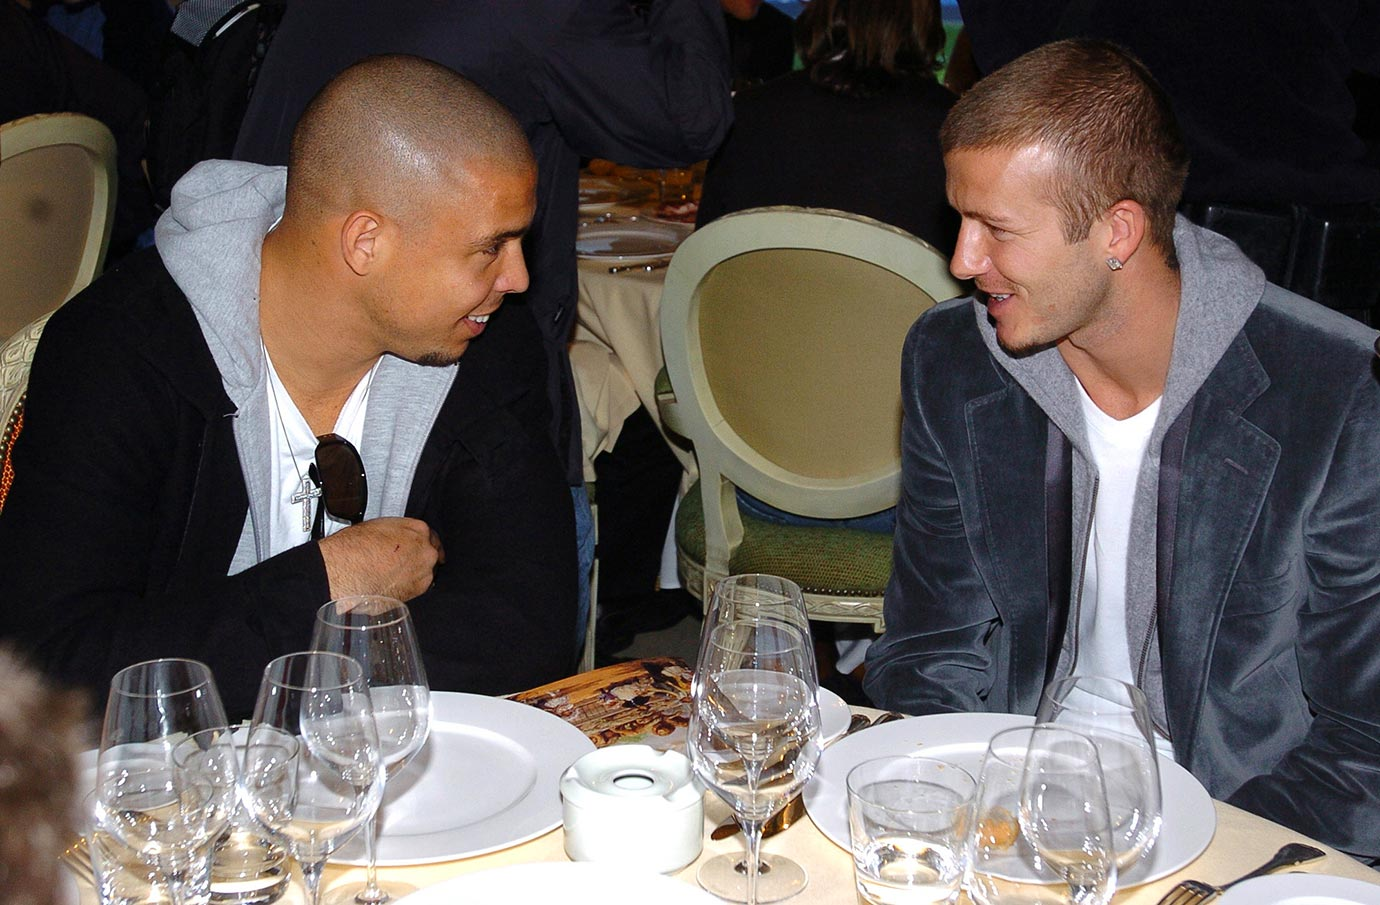 Real Madrid's Ronaldo and David Beckham chat during a lunch in 2004.